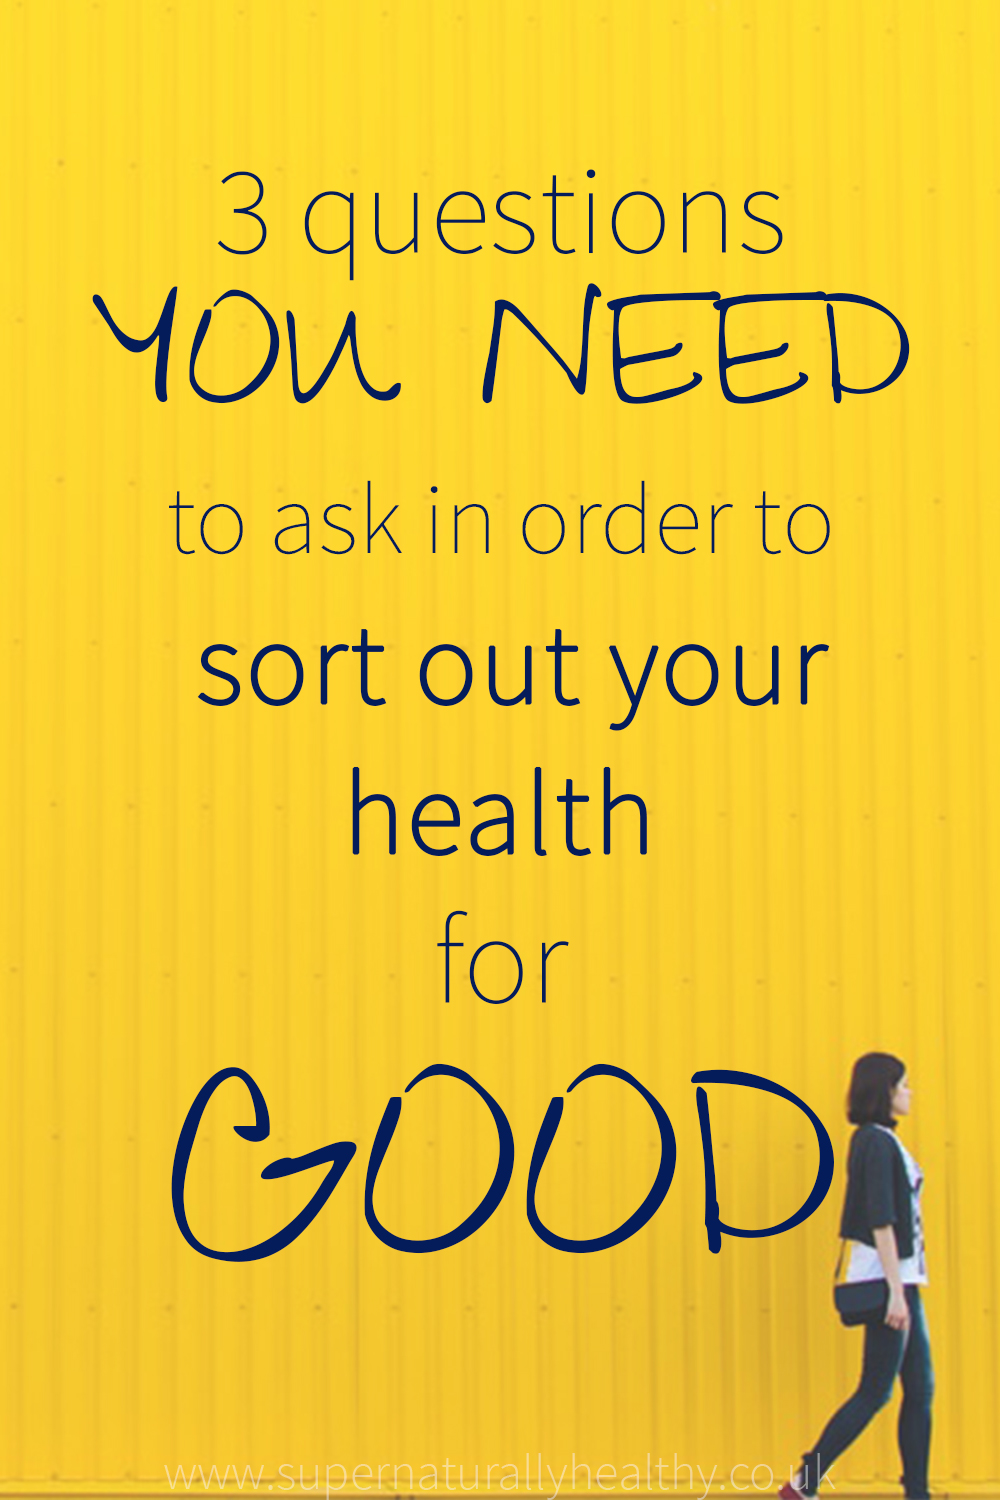 3-questions-you-need-to-ask-in-order-to-sort-out-your-health-for-good